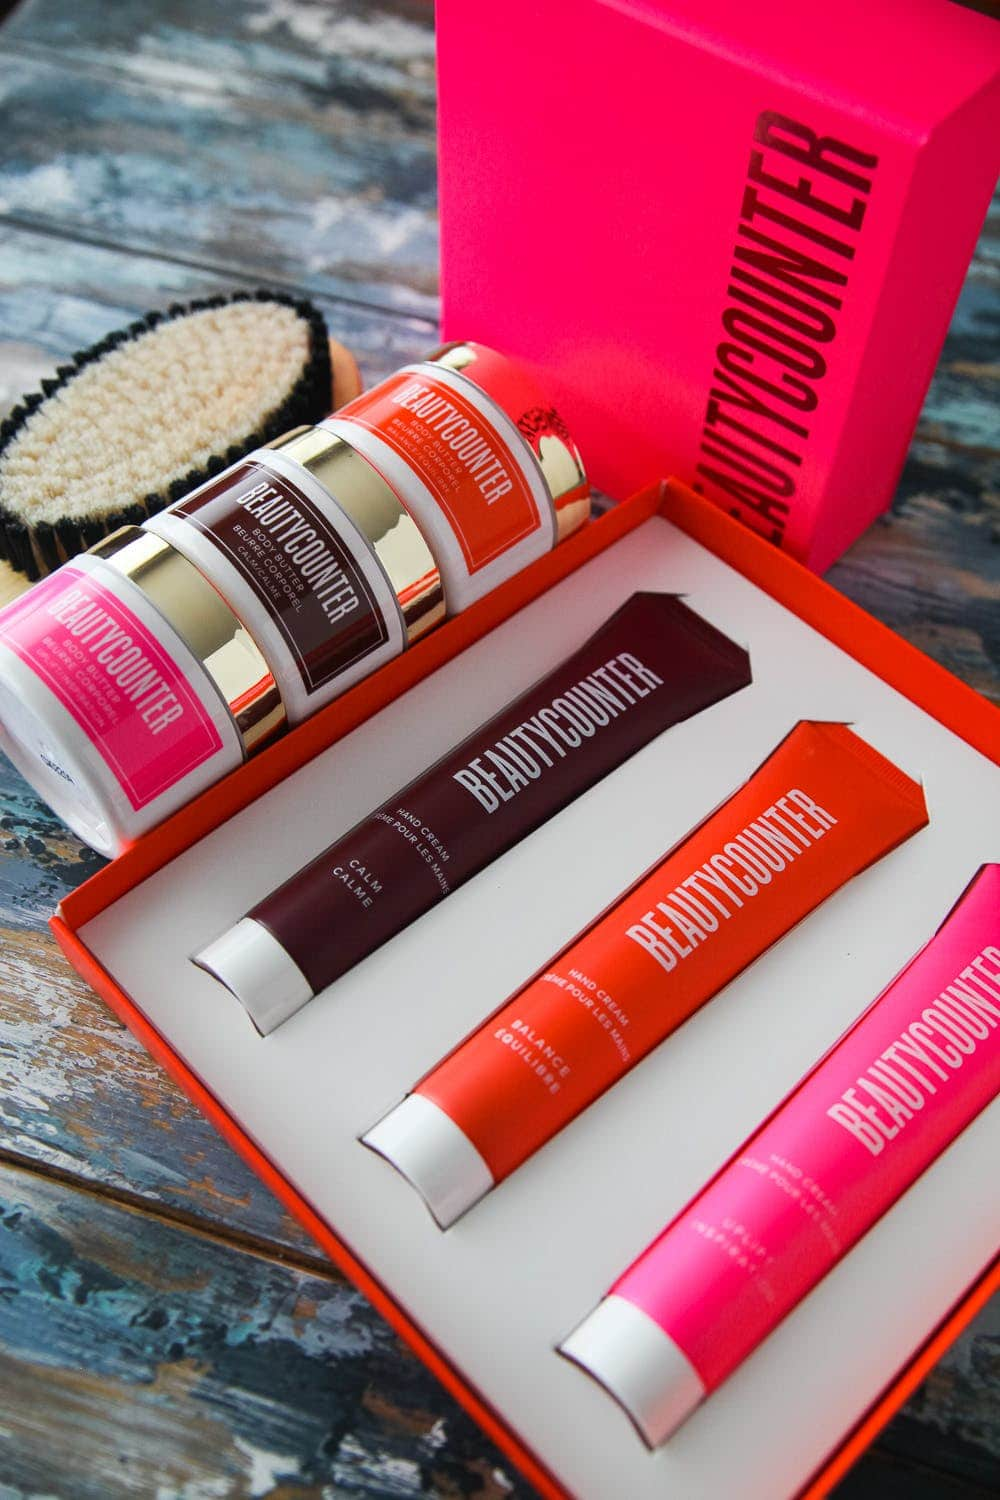 Beautycounter's Good Scents Body Butter & Hand Cream Trios in red and pink gift boxes.